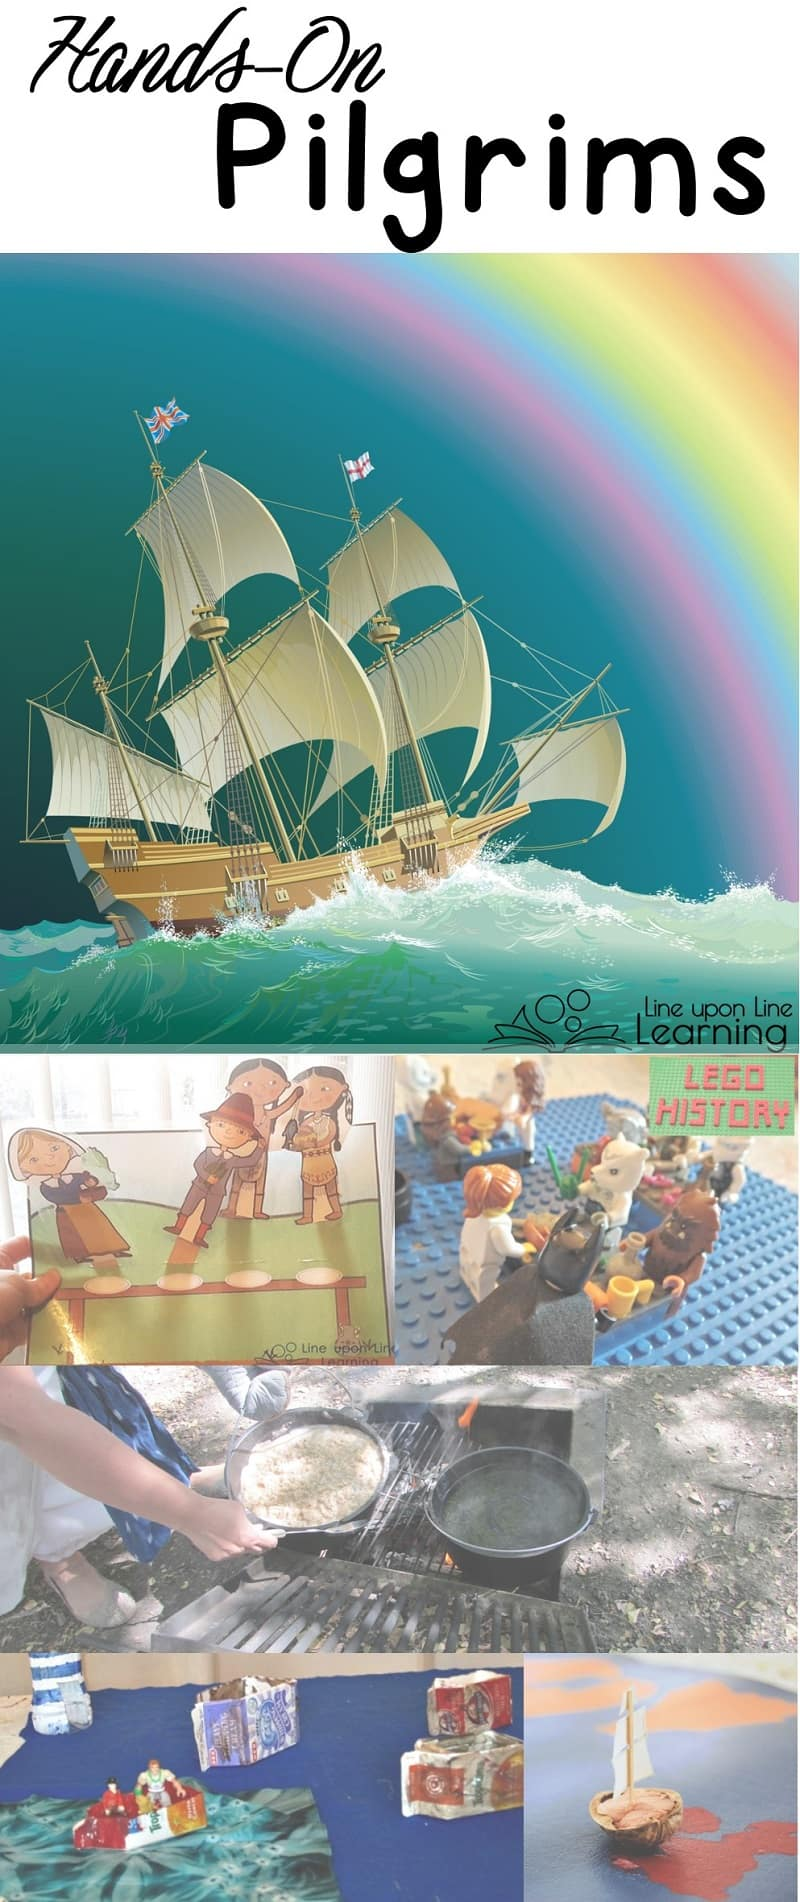 Hands-on activities and crafts for the Pilgrims and the Plymouth early American settlements brings history to life.